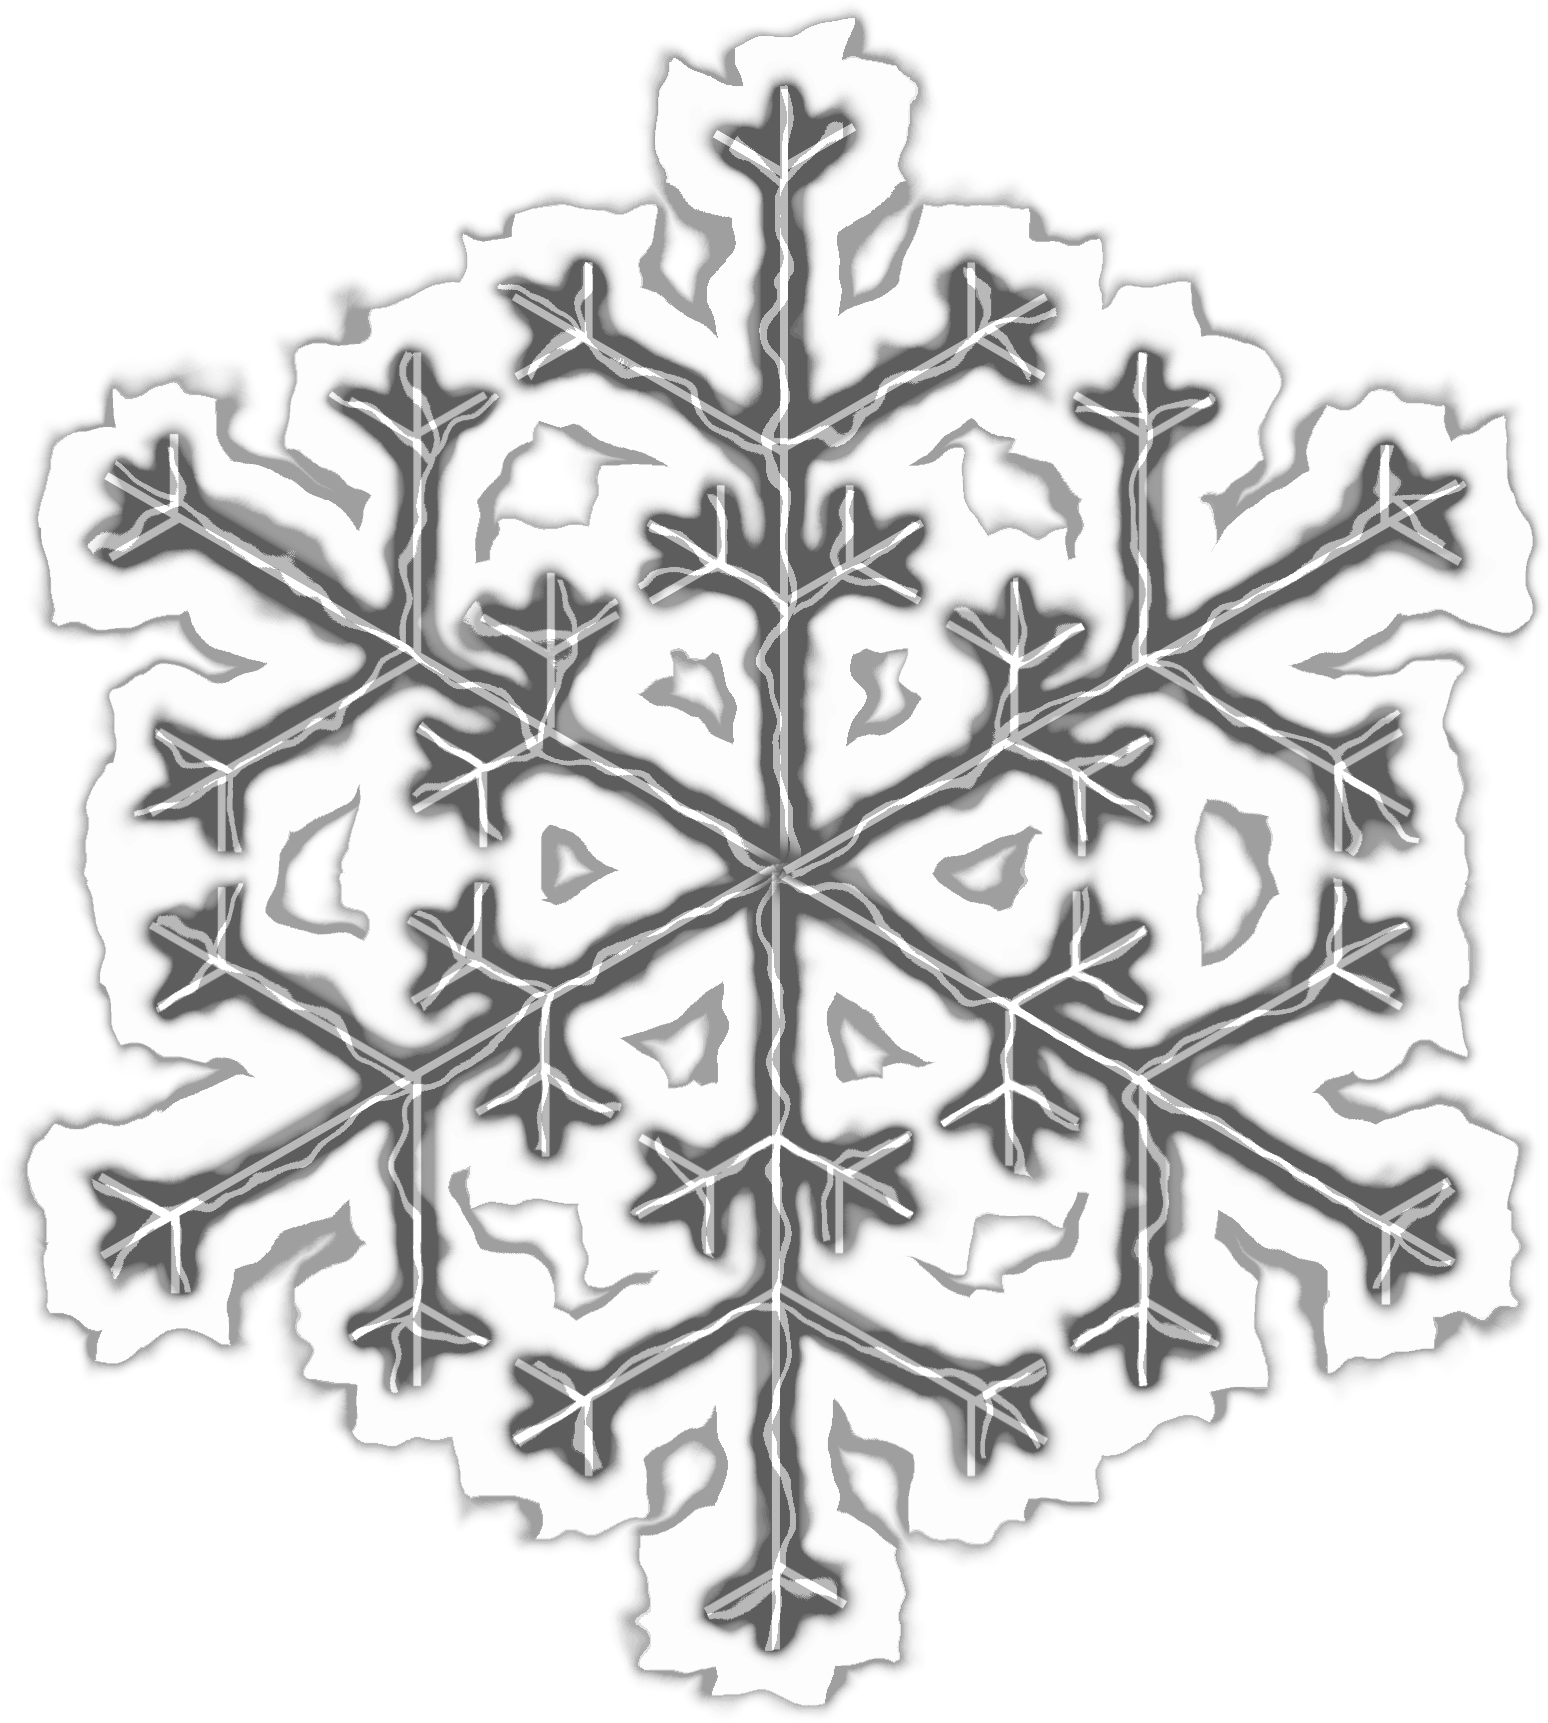 Snowflake by algotruneman